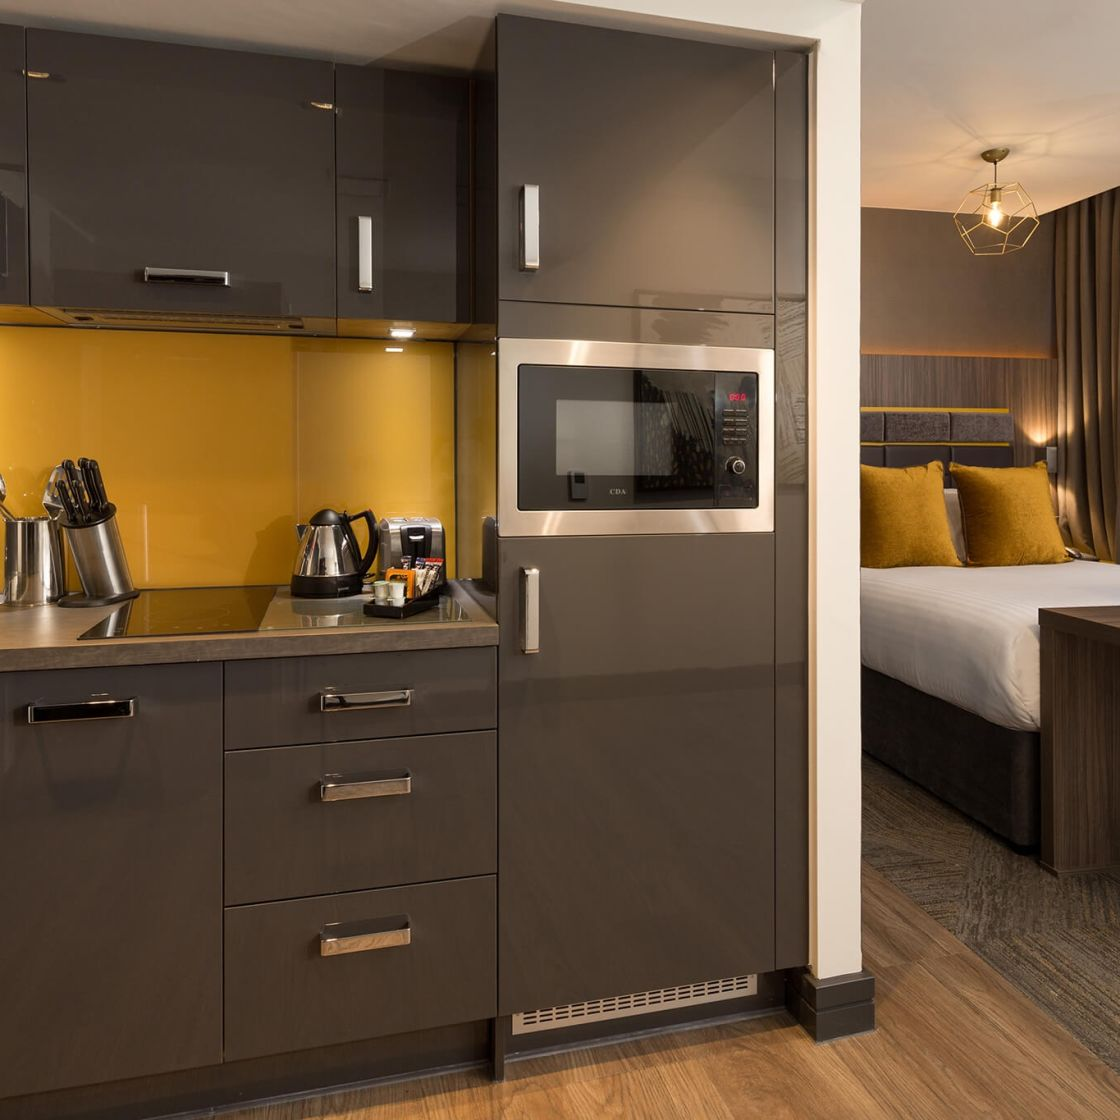 Smart Studio Student Apartment in Manchester with King Size Bed. IconInc @ Roomzzz